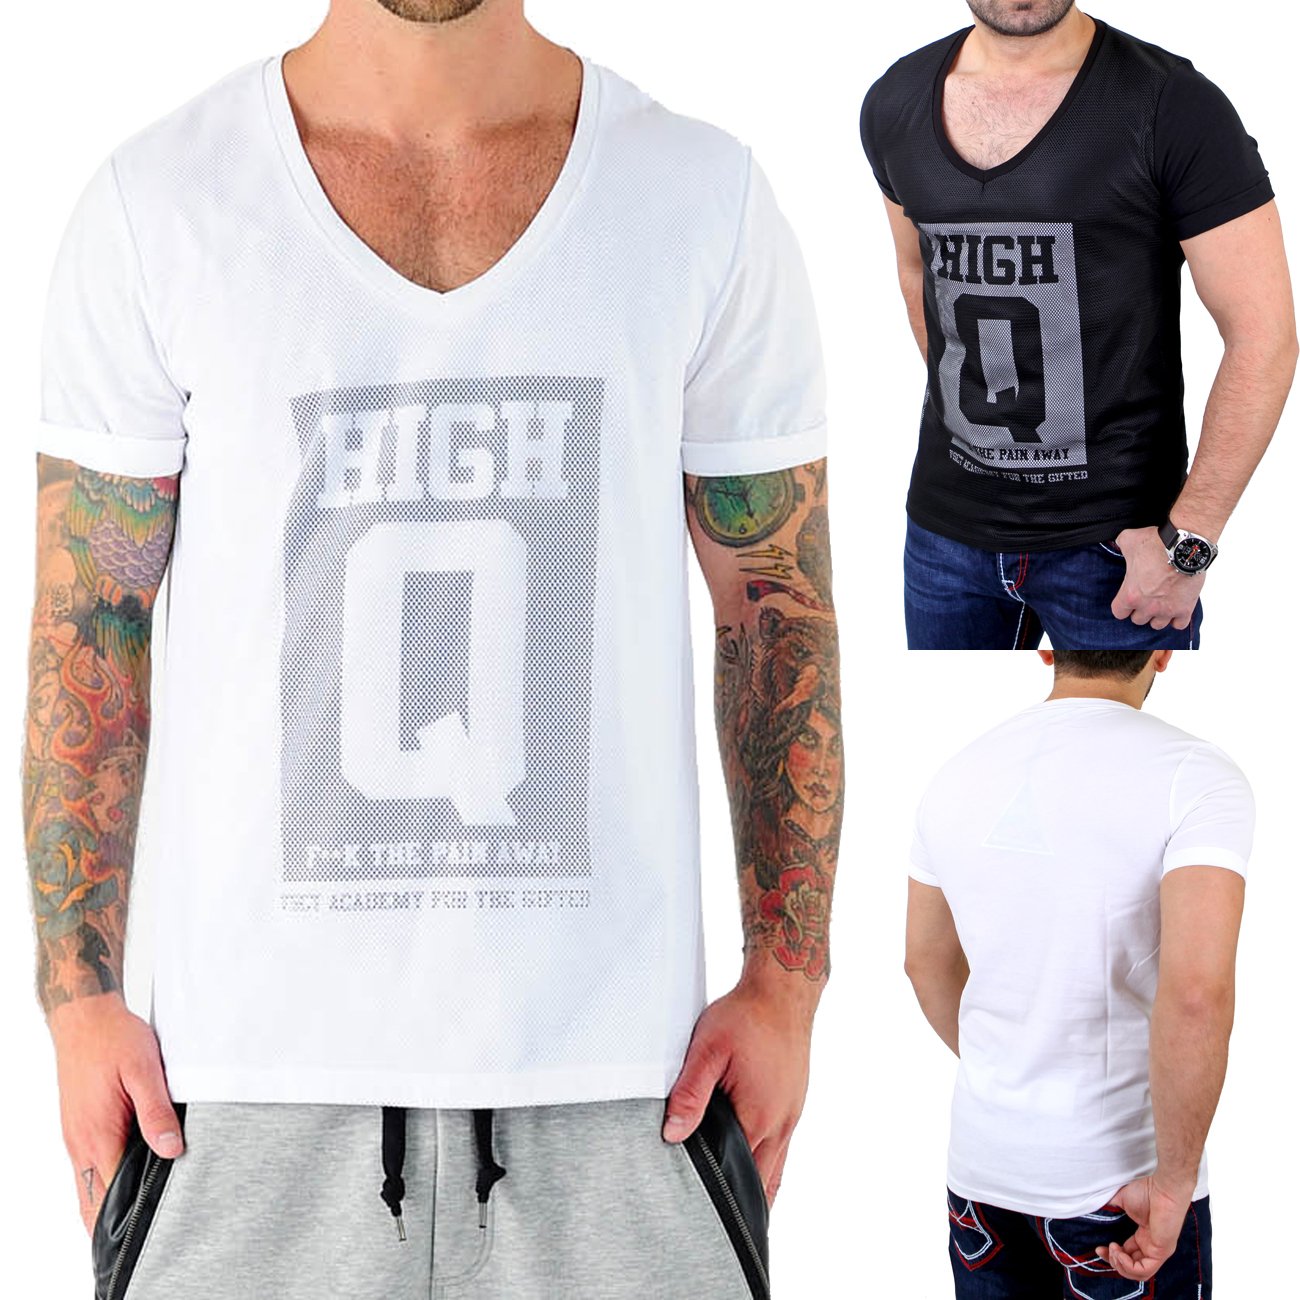 vsct t shirt herren high q mesh netz shirt v 5641156 ebay. Black Bedroom Furniture Sets. Home Design Ideas